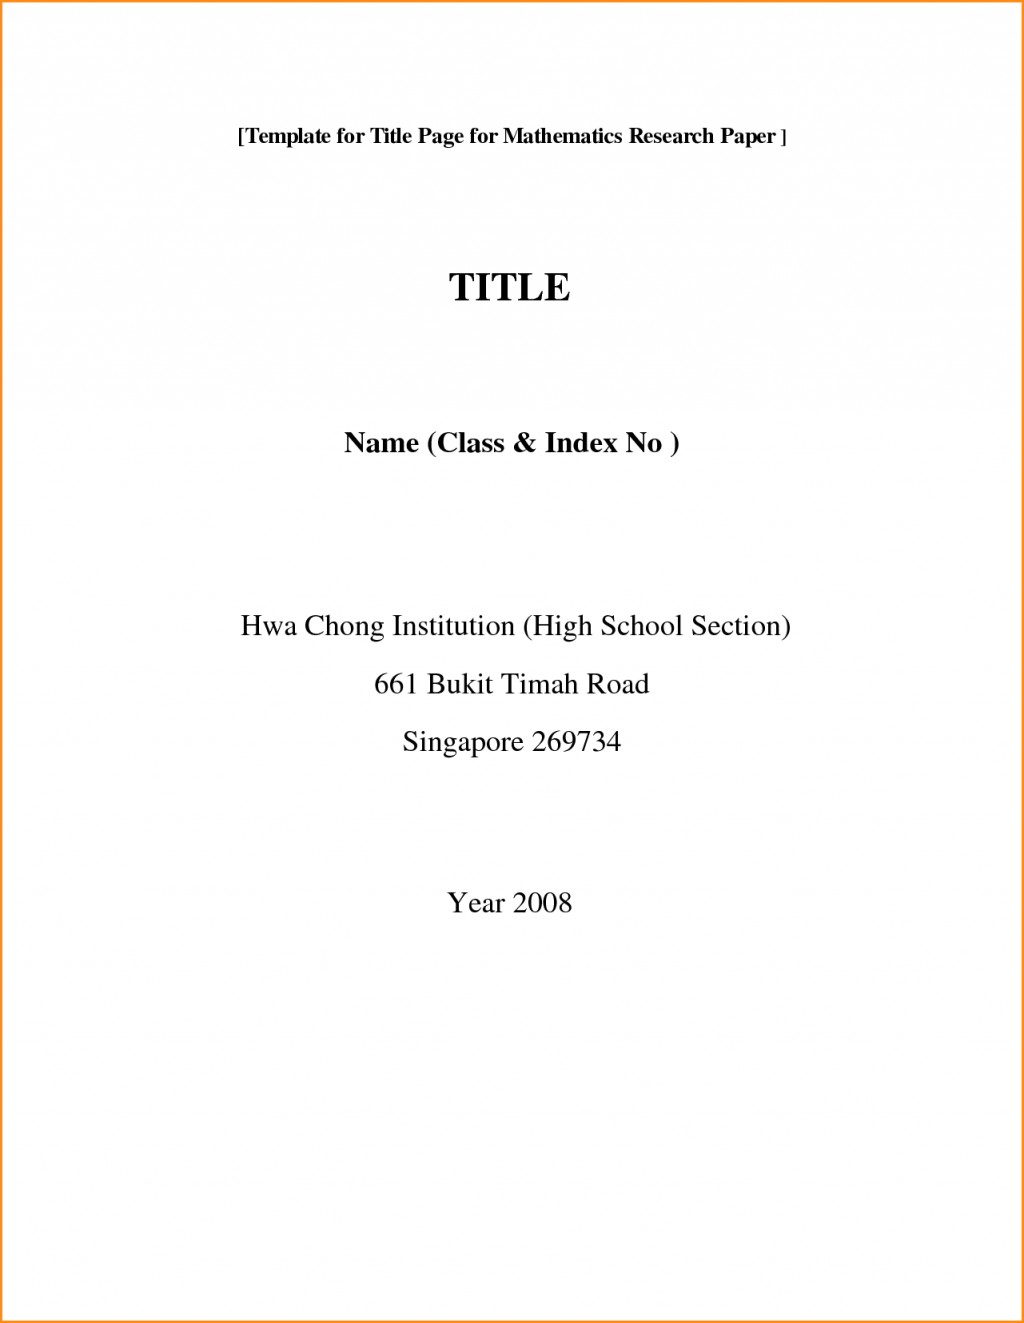 004 What Is Cover Page For An Essay Front Of Research Paper Format Awesome A Does 2 Look Like Two Should I Put On Large